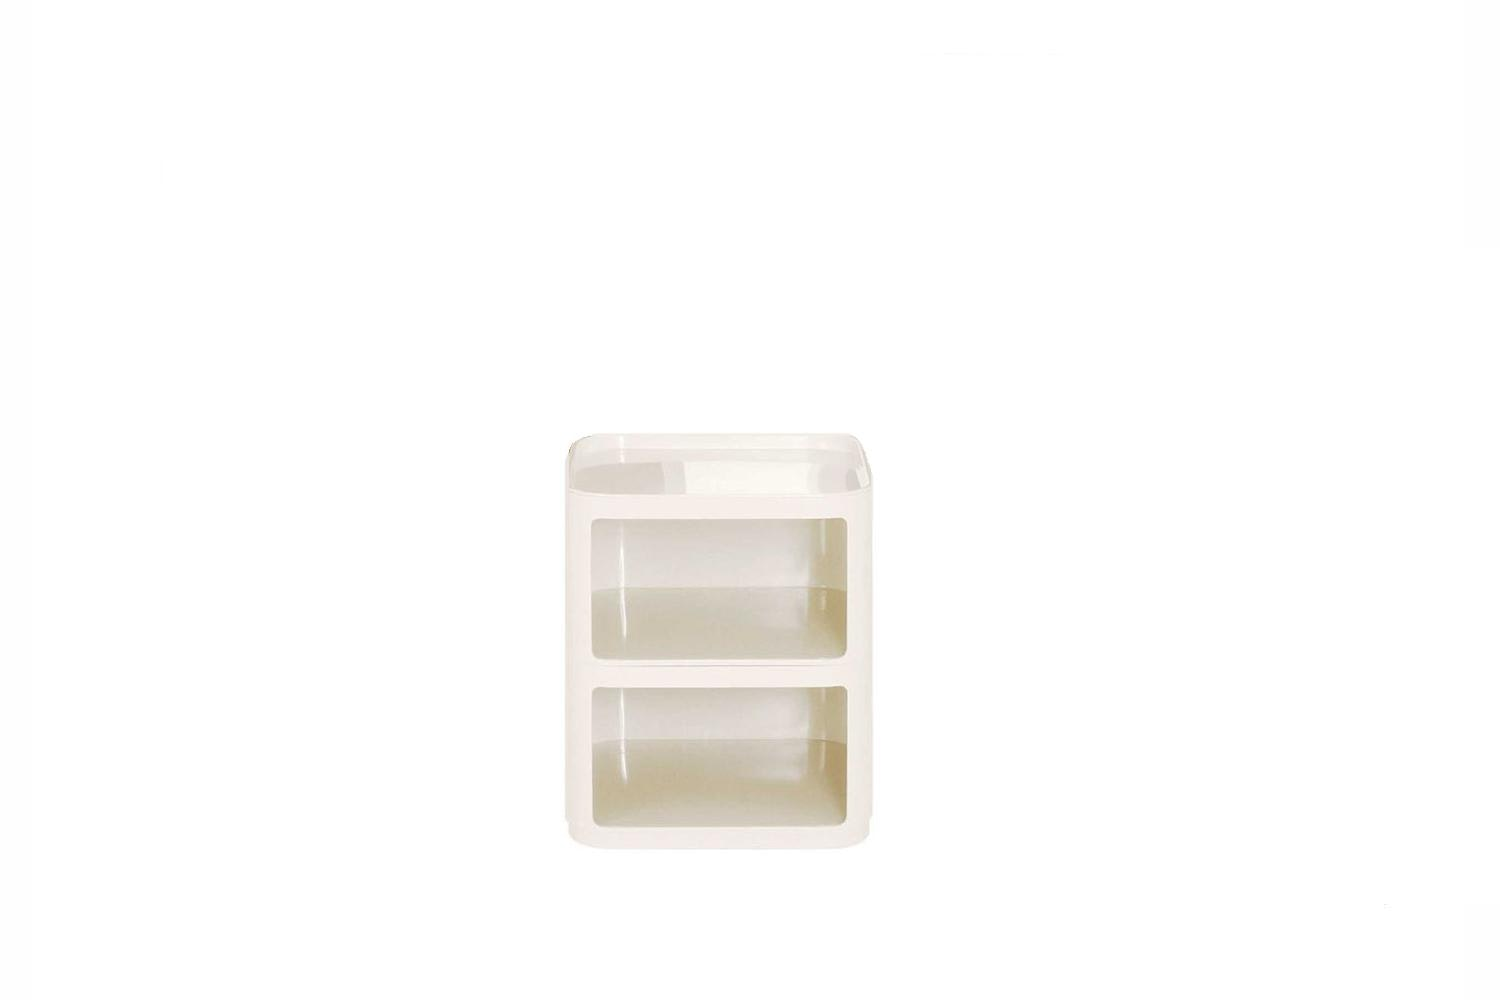 Componibili Square 2 Low Elements by Anna Castelli Ferrieri for Kartell